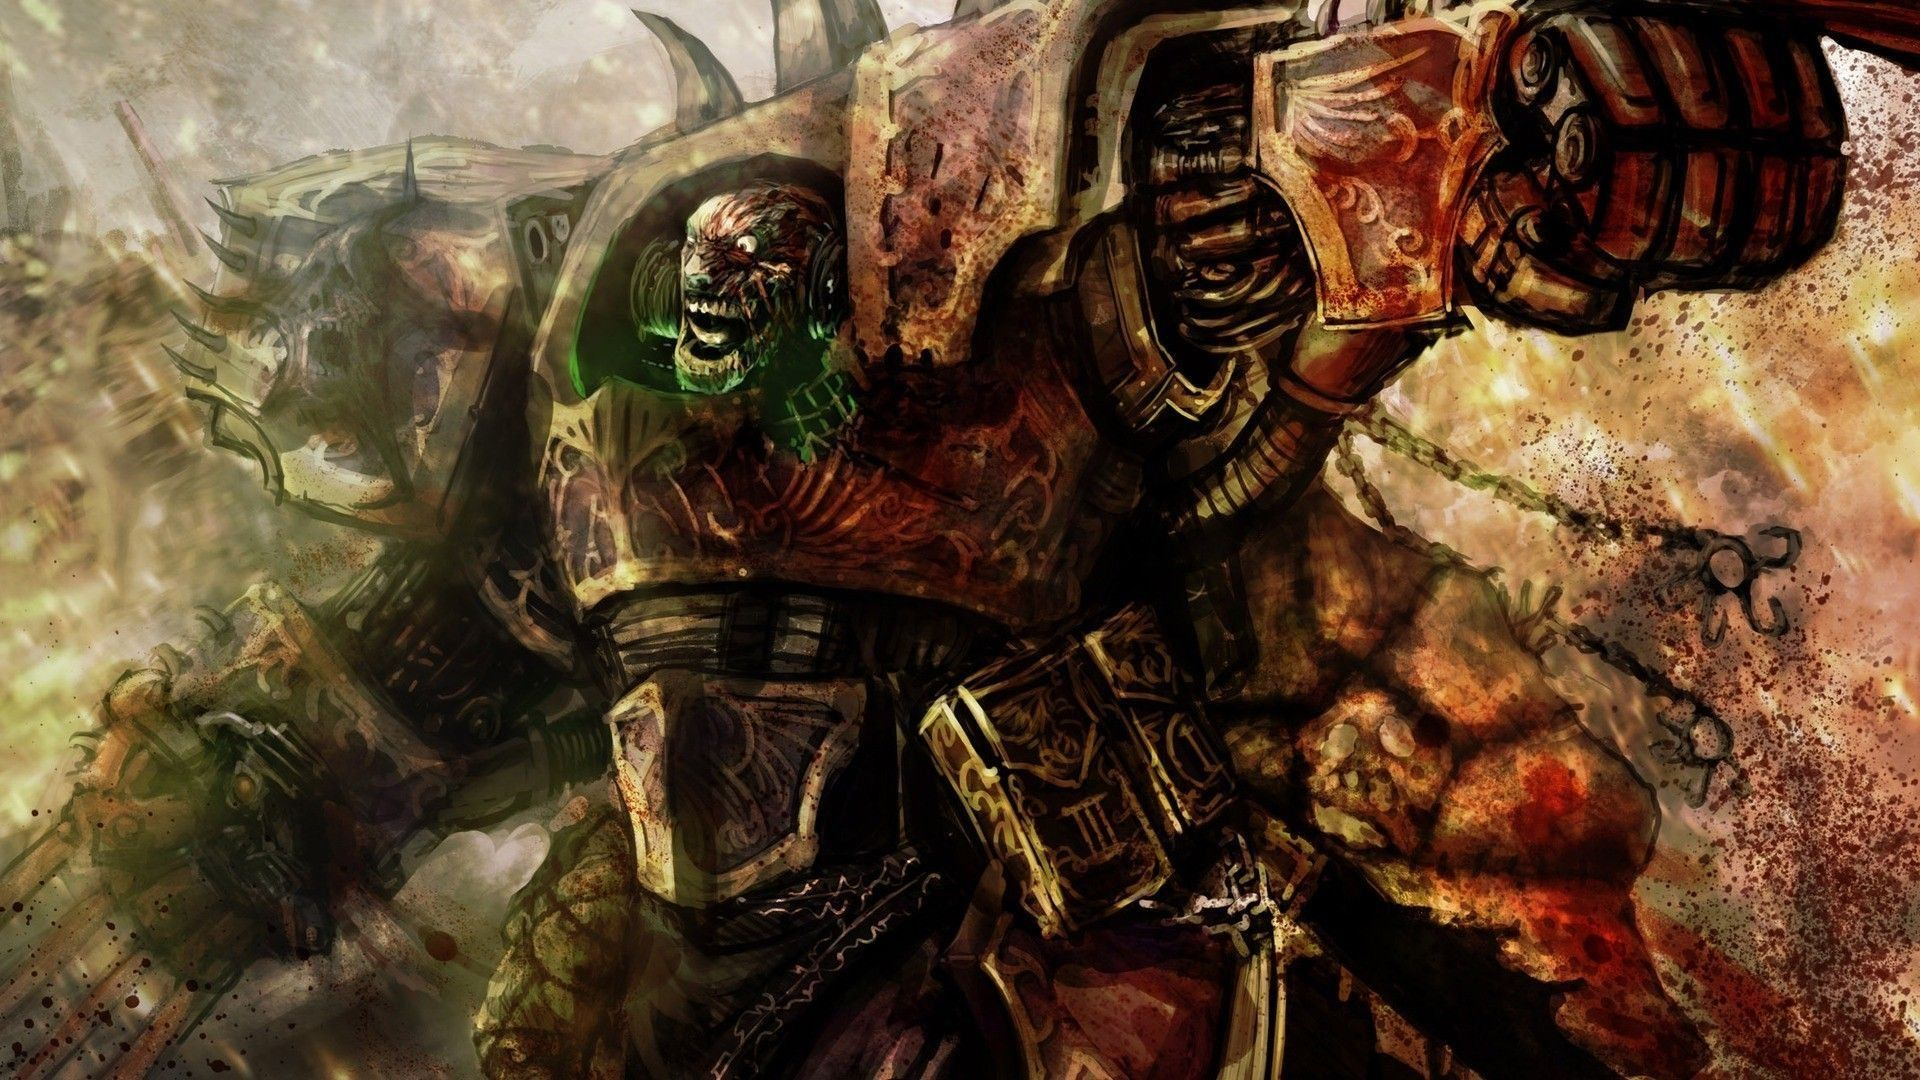 warhammer 40k screensaver